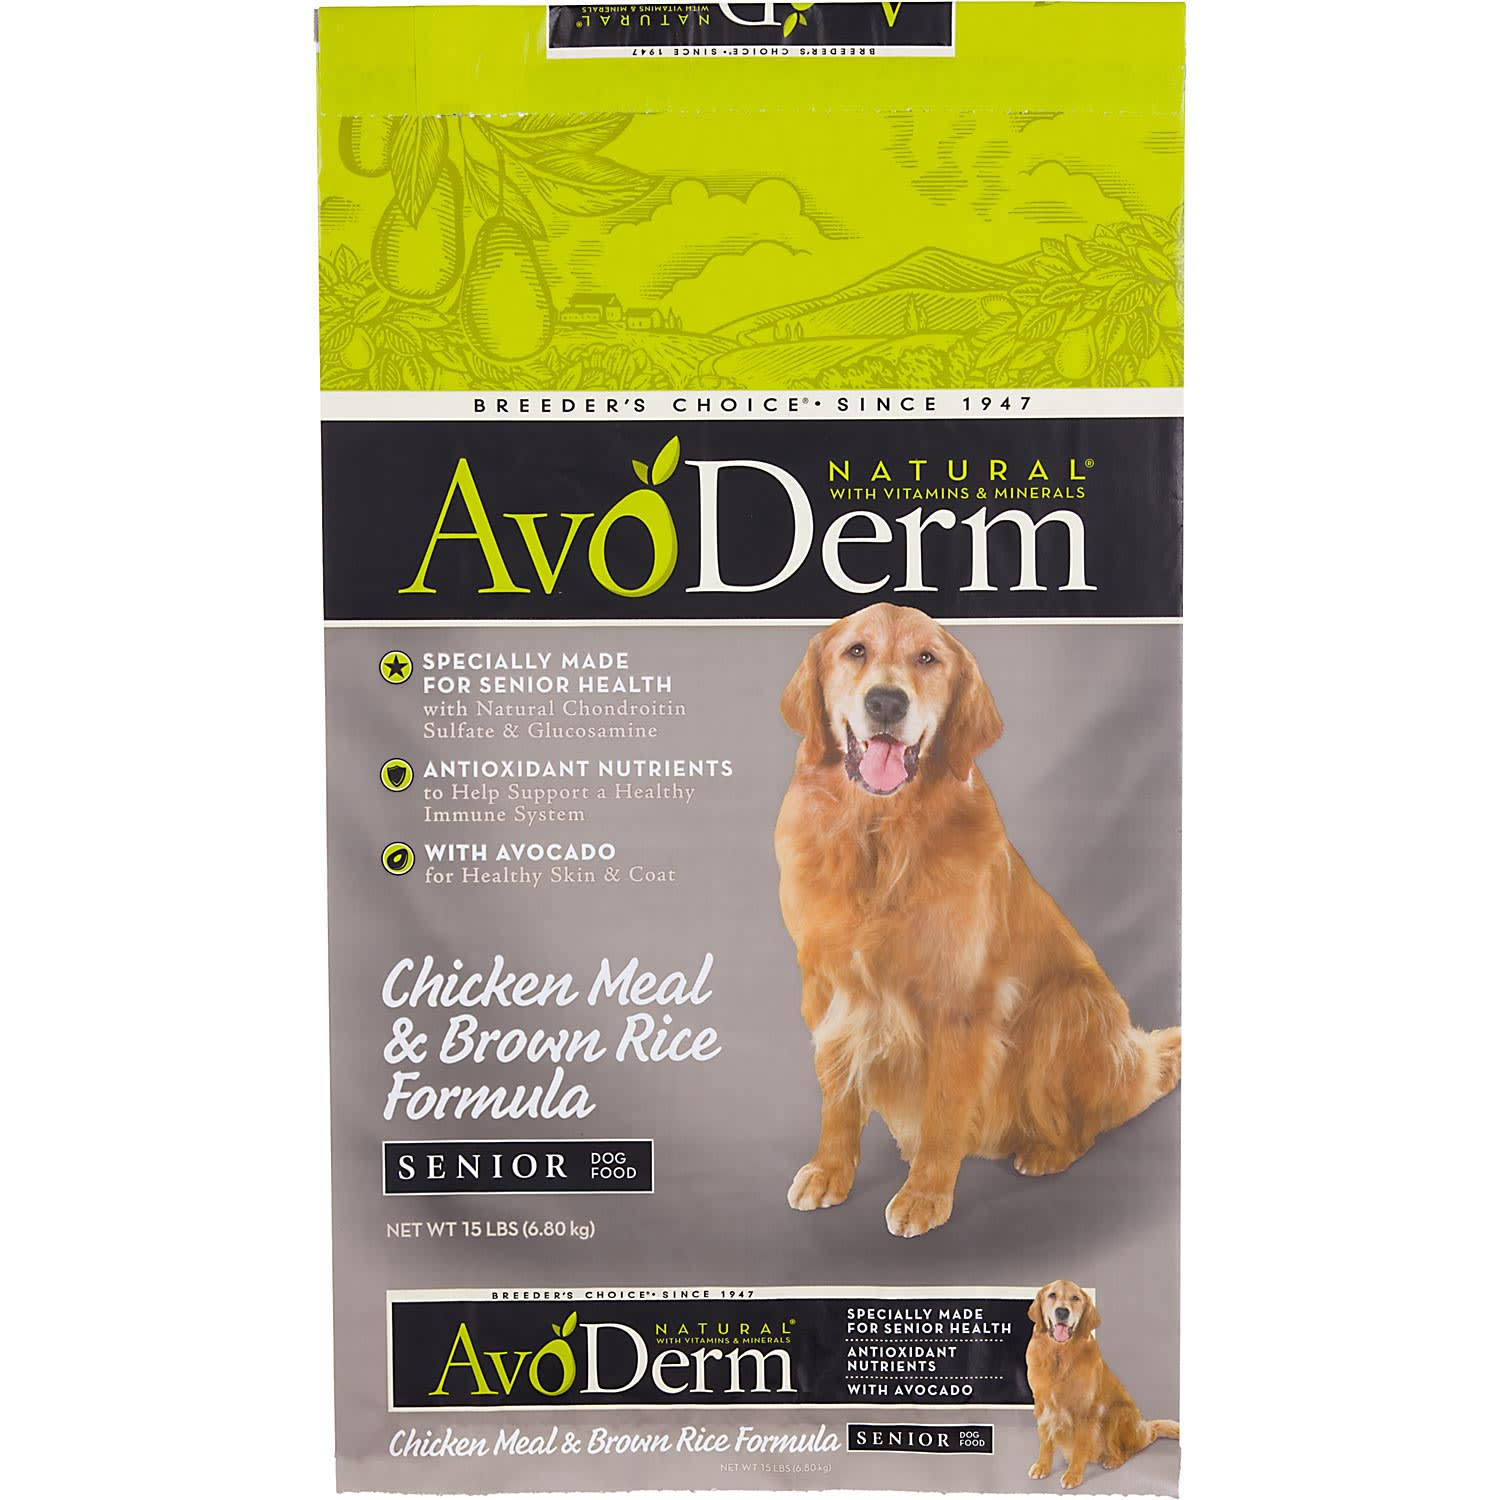 AvoDerm Natural Senior Chicken Meal & Brown Rice Formula Dry Dog Food, 26 lbs.